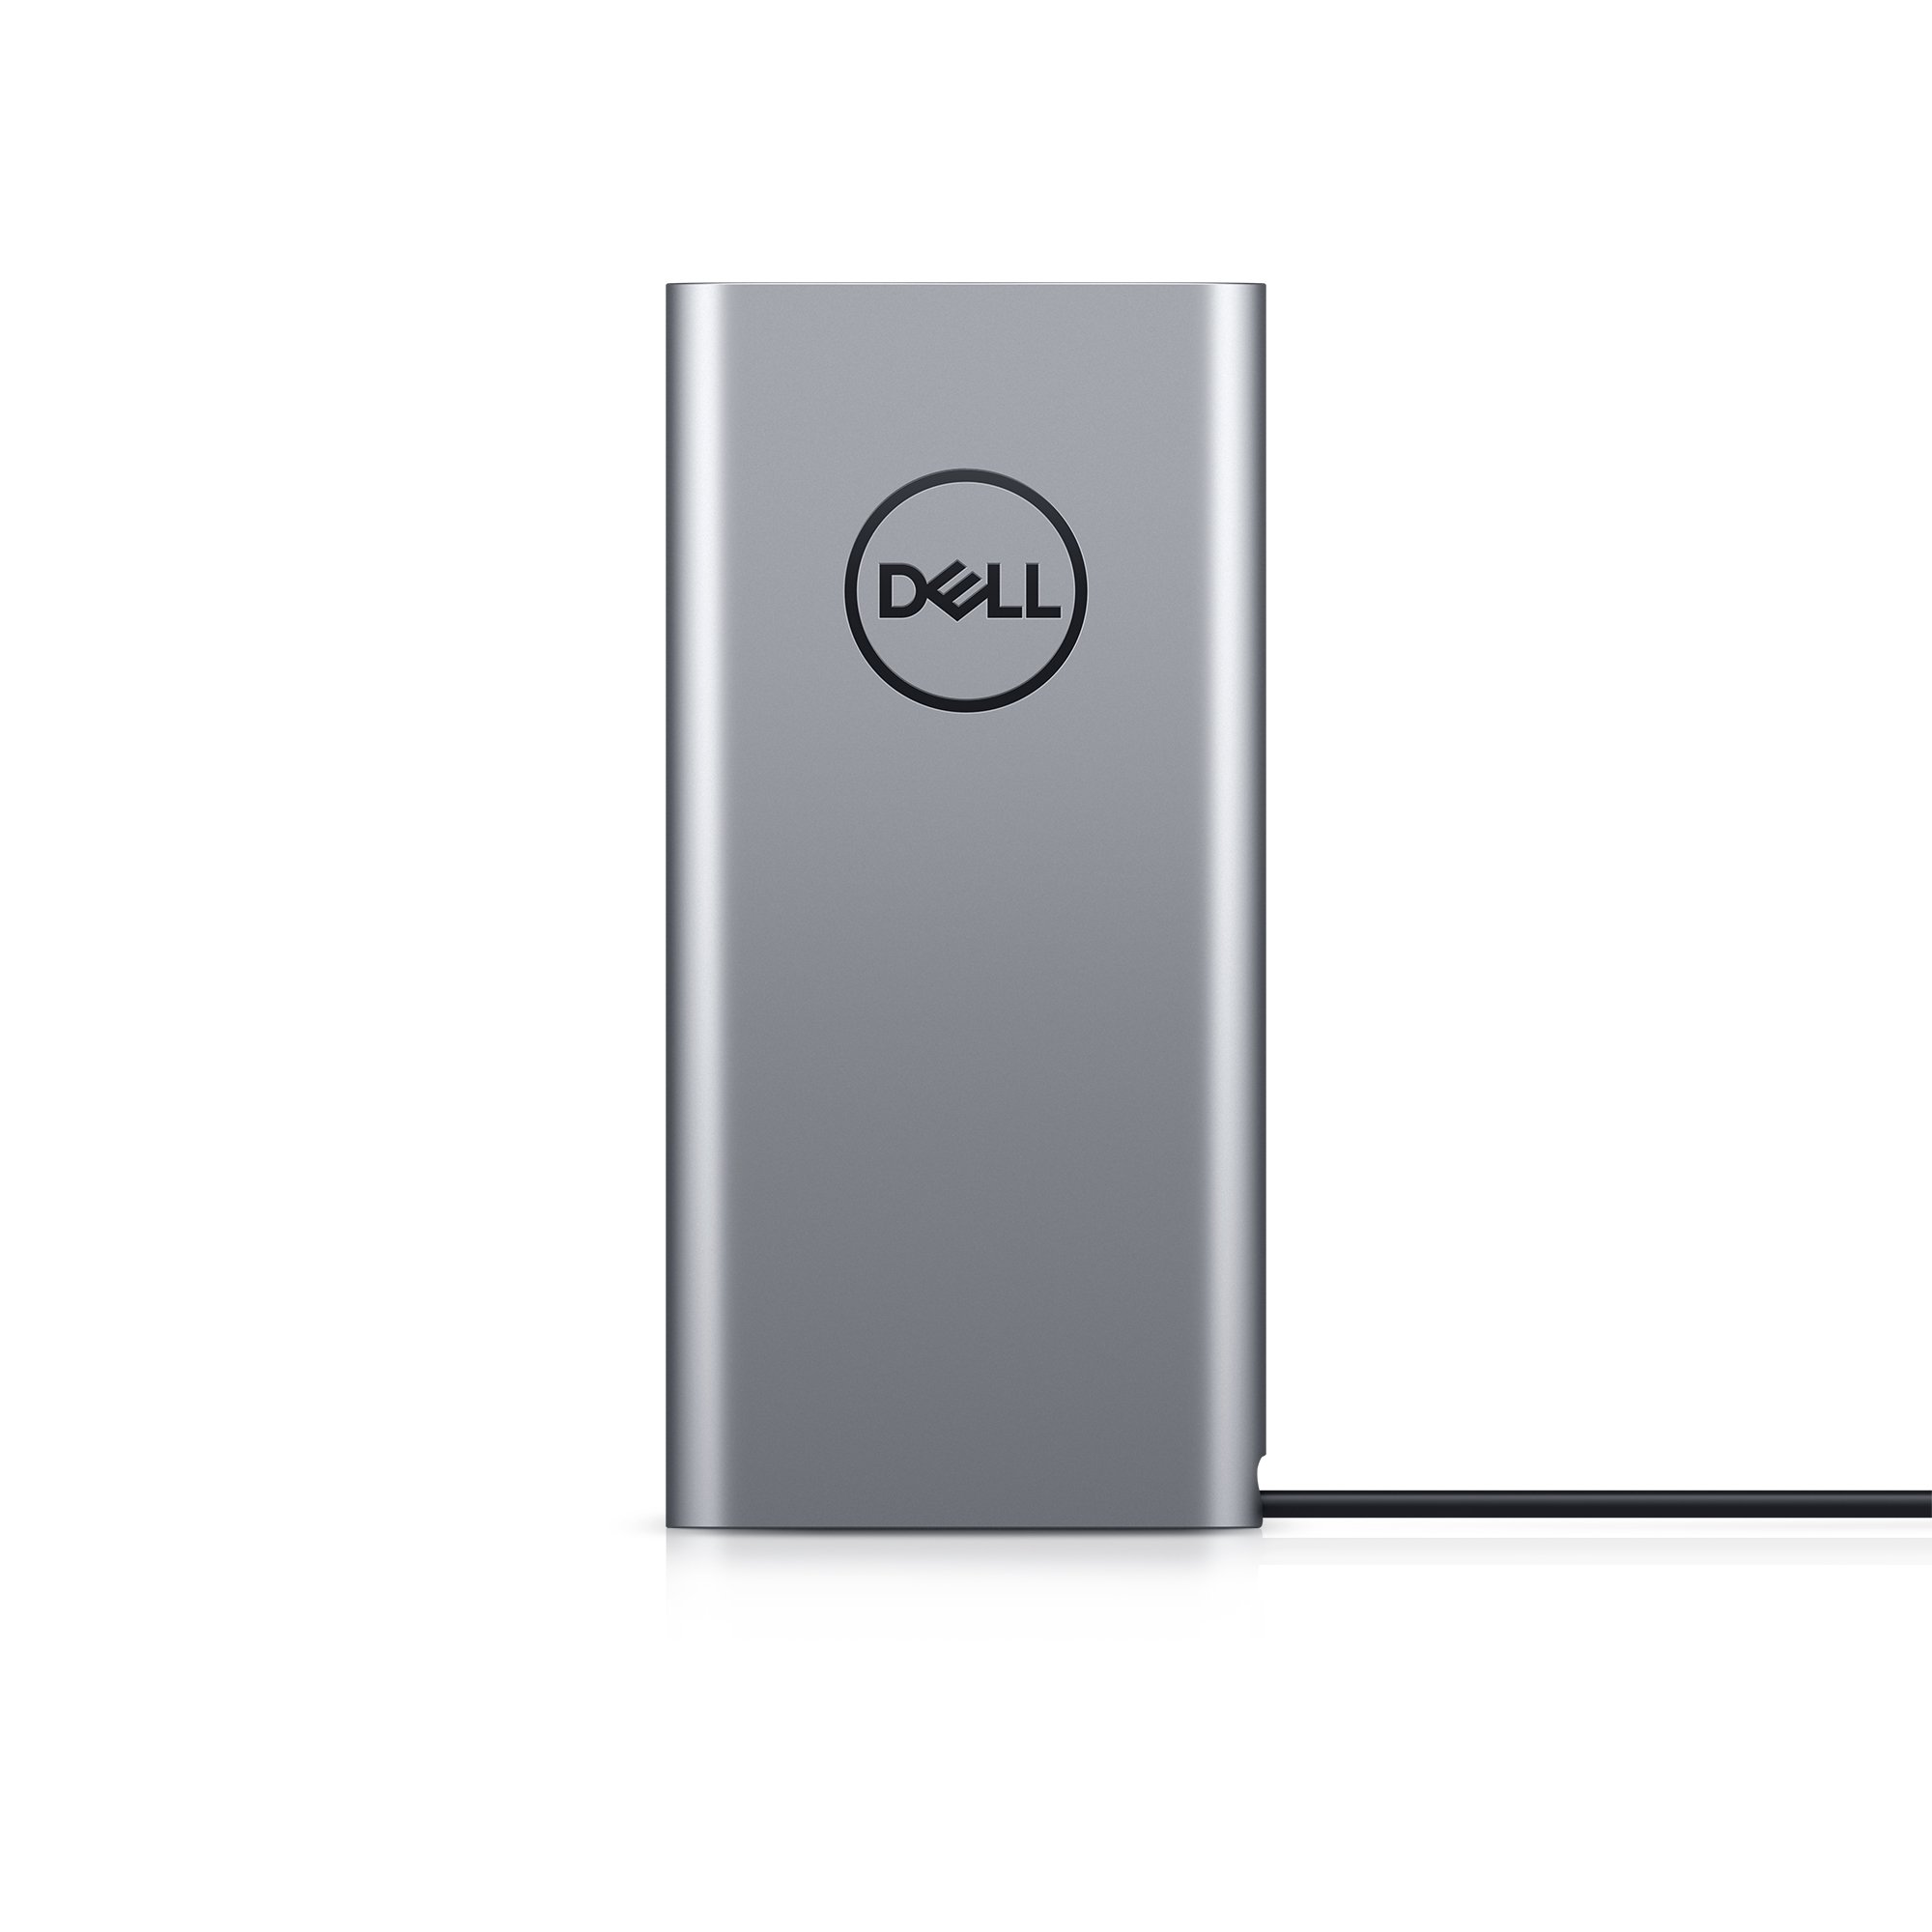 Dell PW7018LC Notebook Power Bank Plus – USB-C